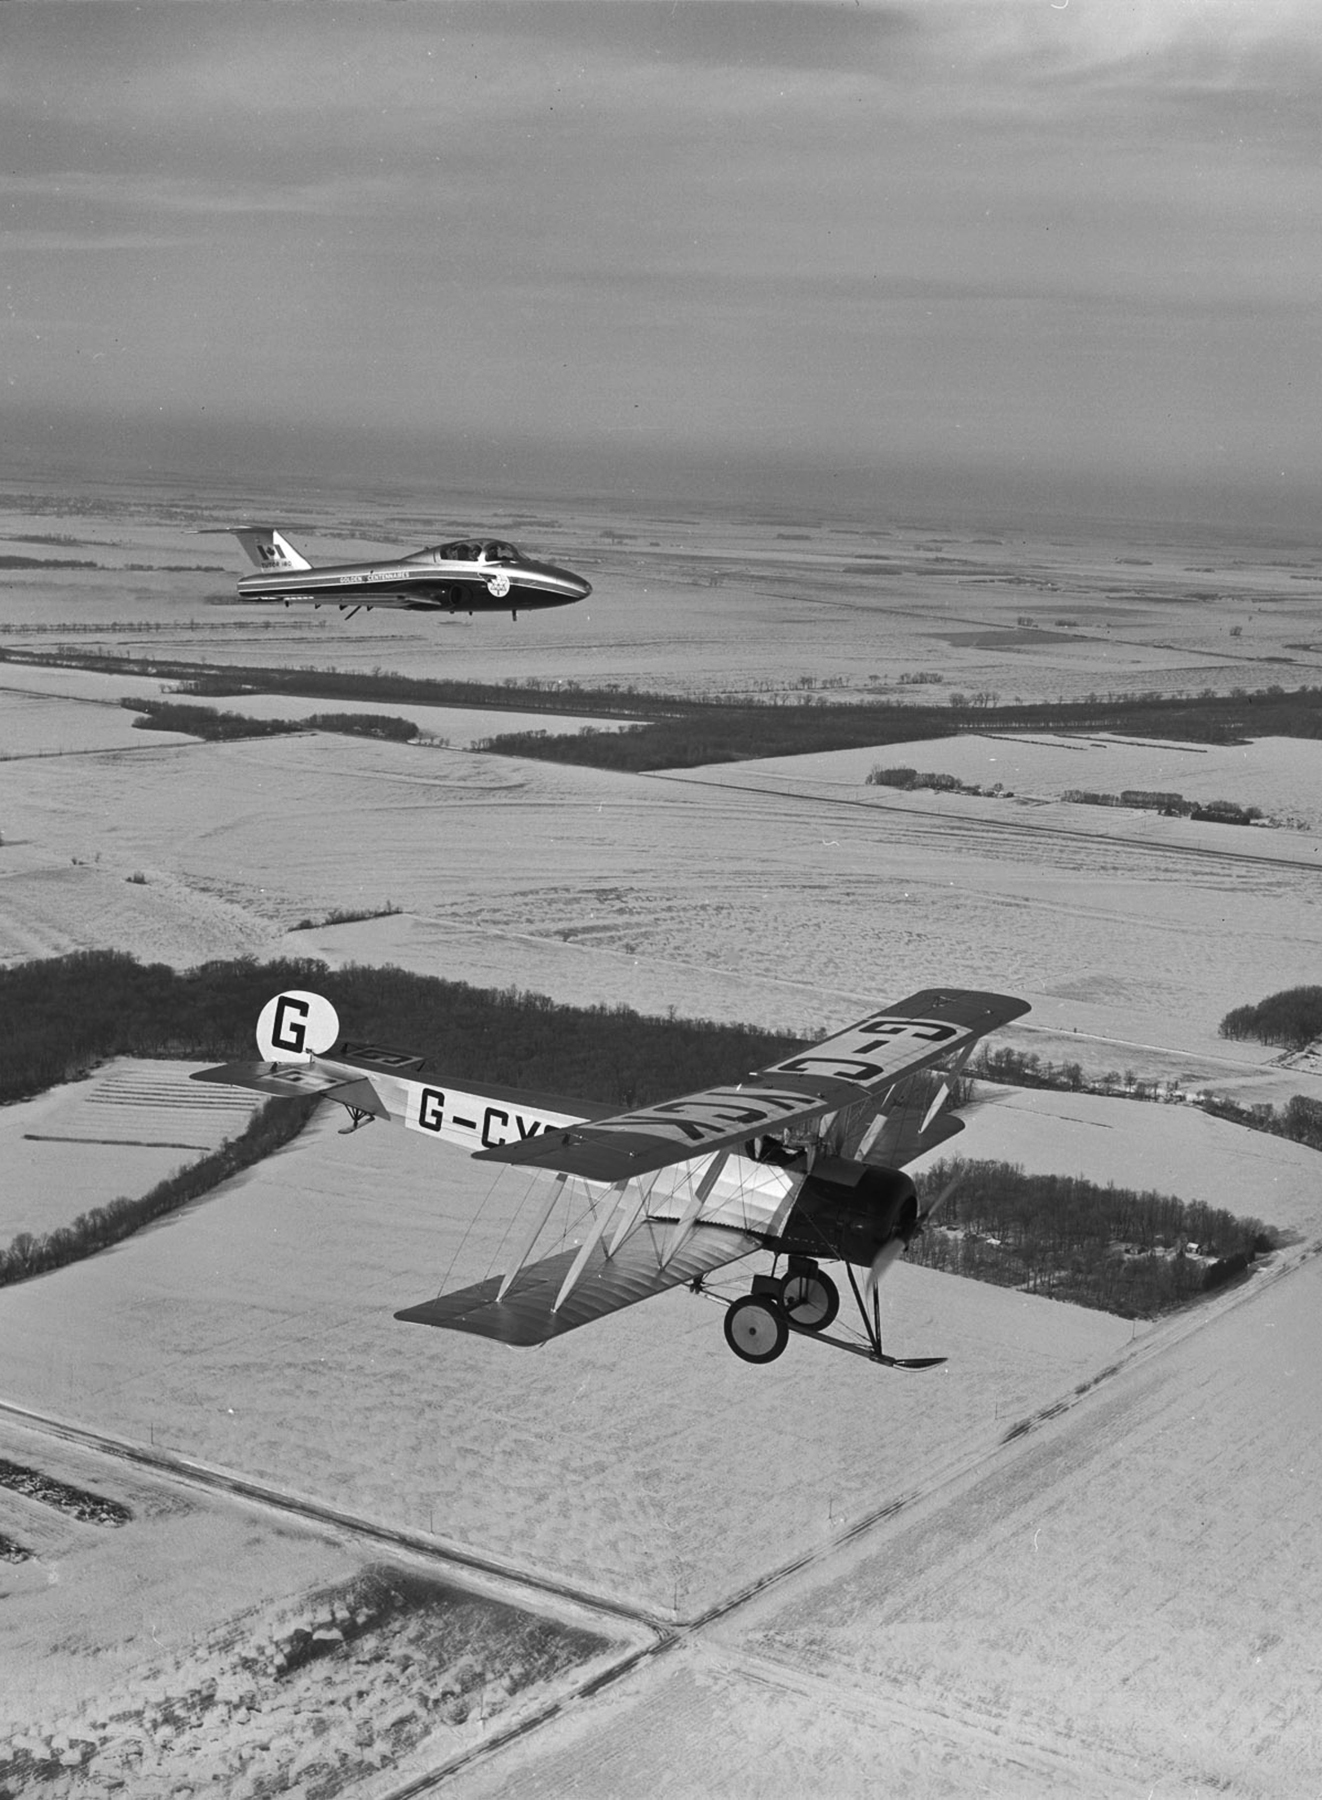 In 1967, two Golden Centennaires aircraft, an Avro 504K biplane (foreground) and a CT-114 Tutor, overfly the prairies of Western Canada. PHOTO: DND Archives, CF67-167-10